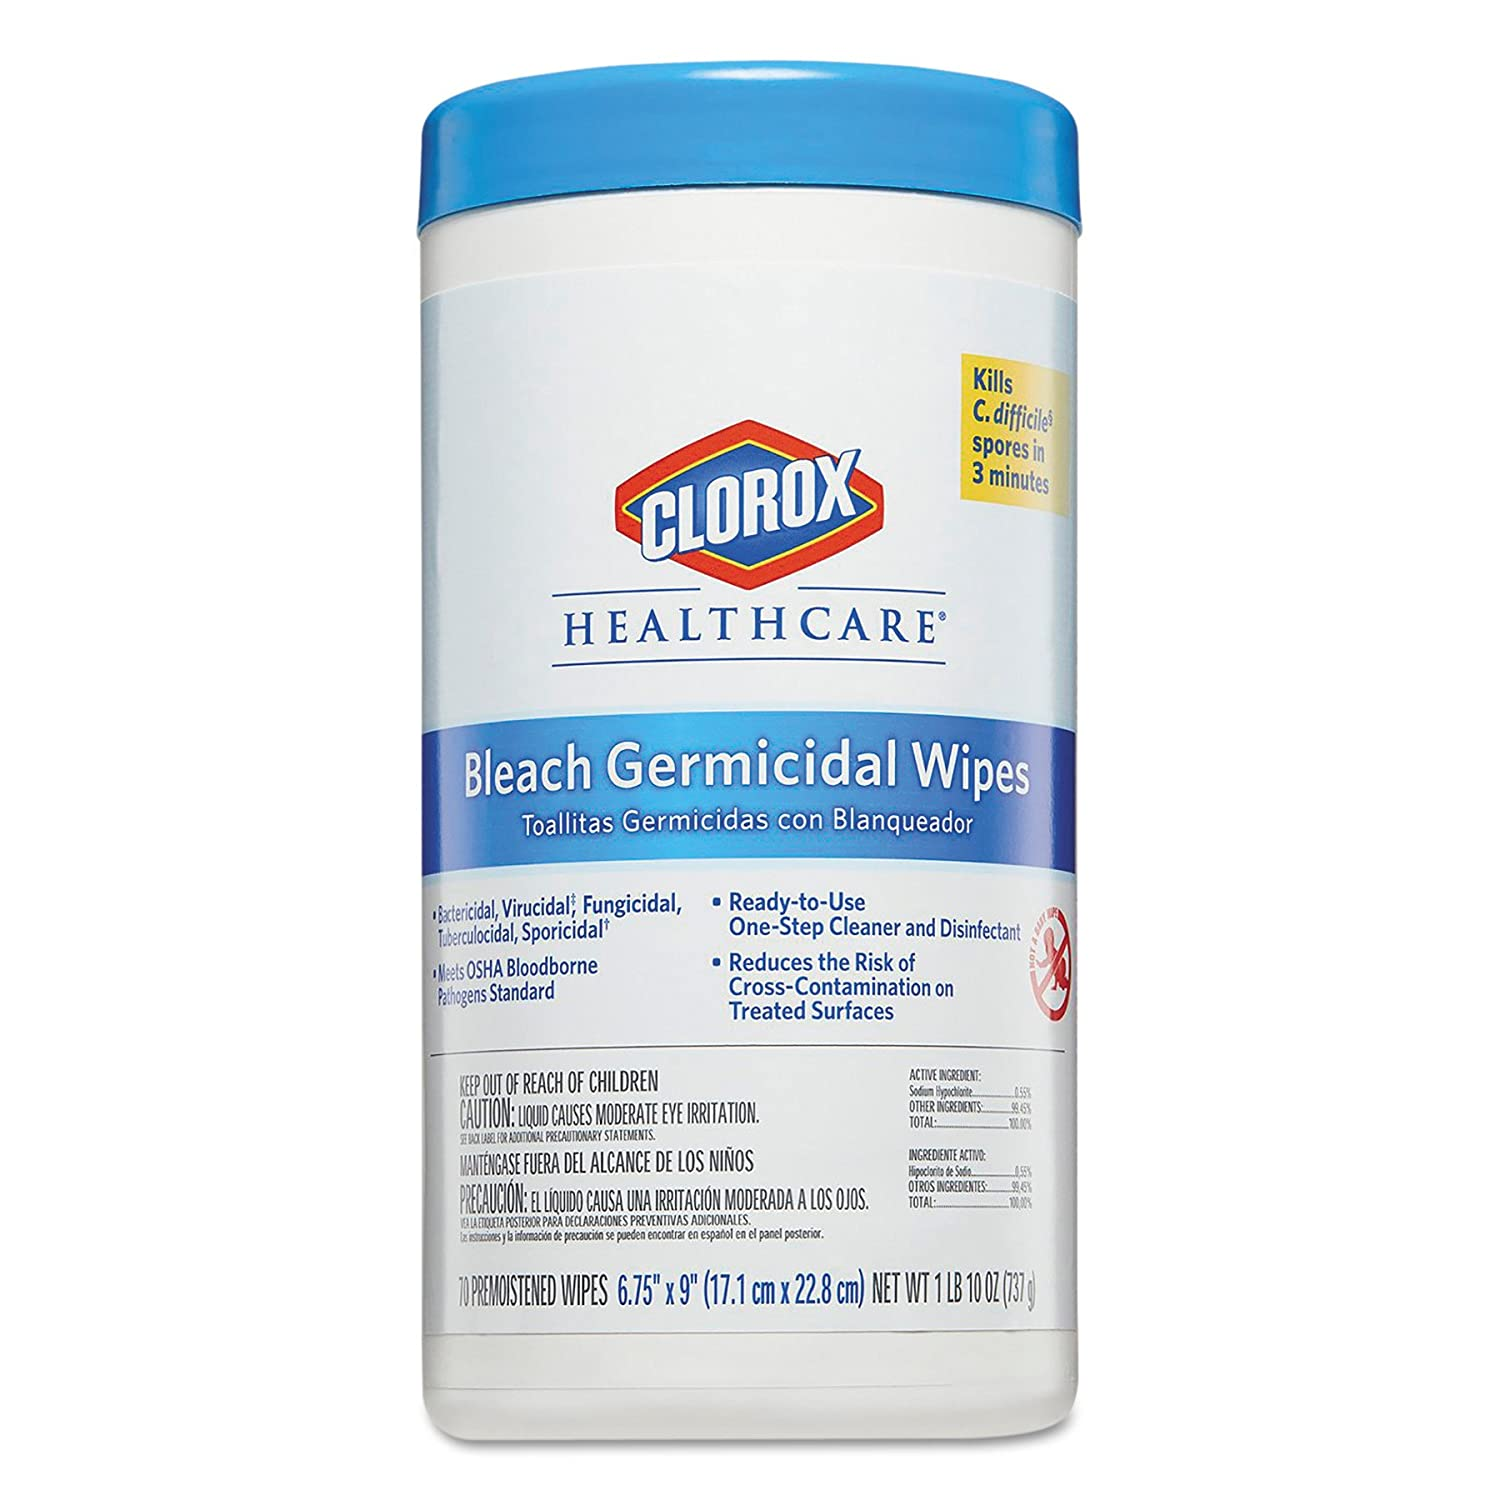 Amazon.com: Clorox Healthcare 35309CT Bleach Germicidal Wipes, 6 3/4 x 9, Unscented, 70 per Canister: Industrial & Scientific